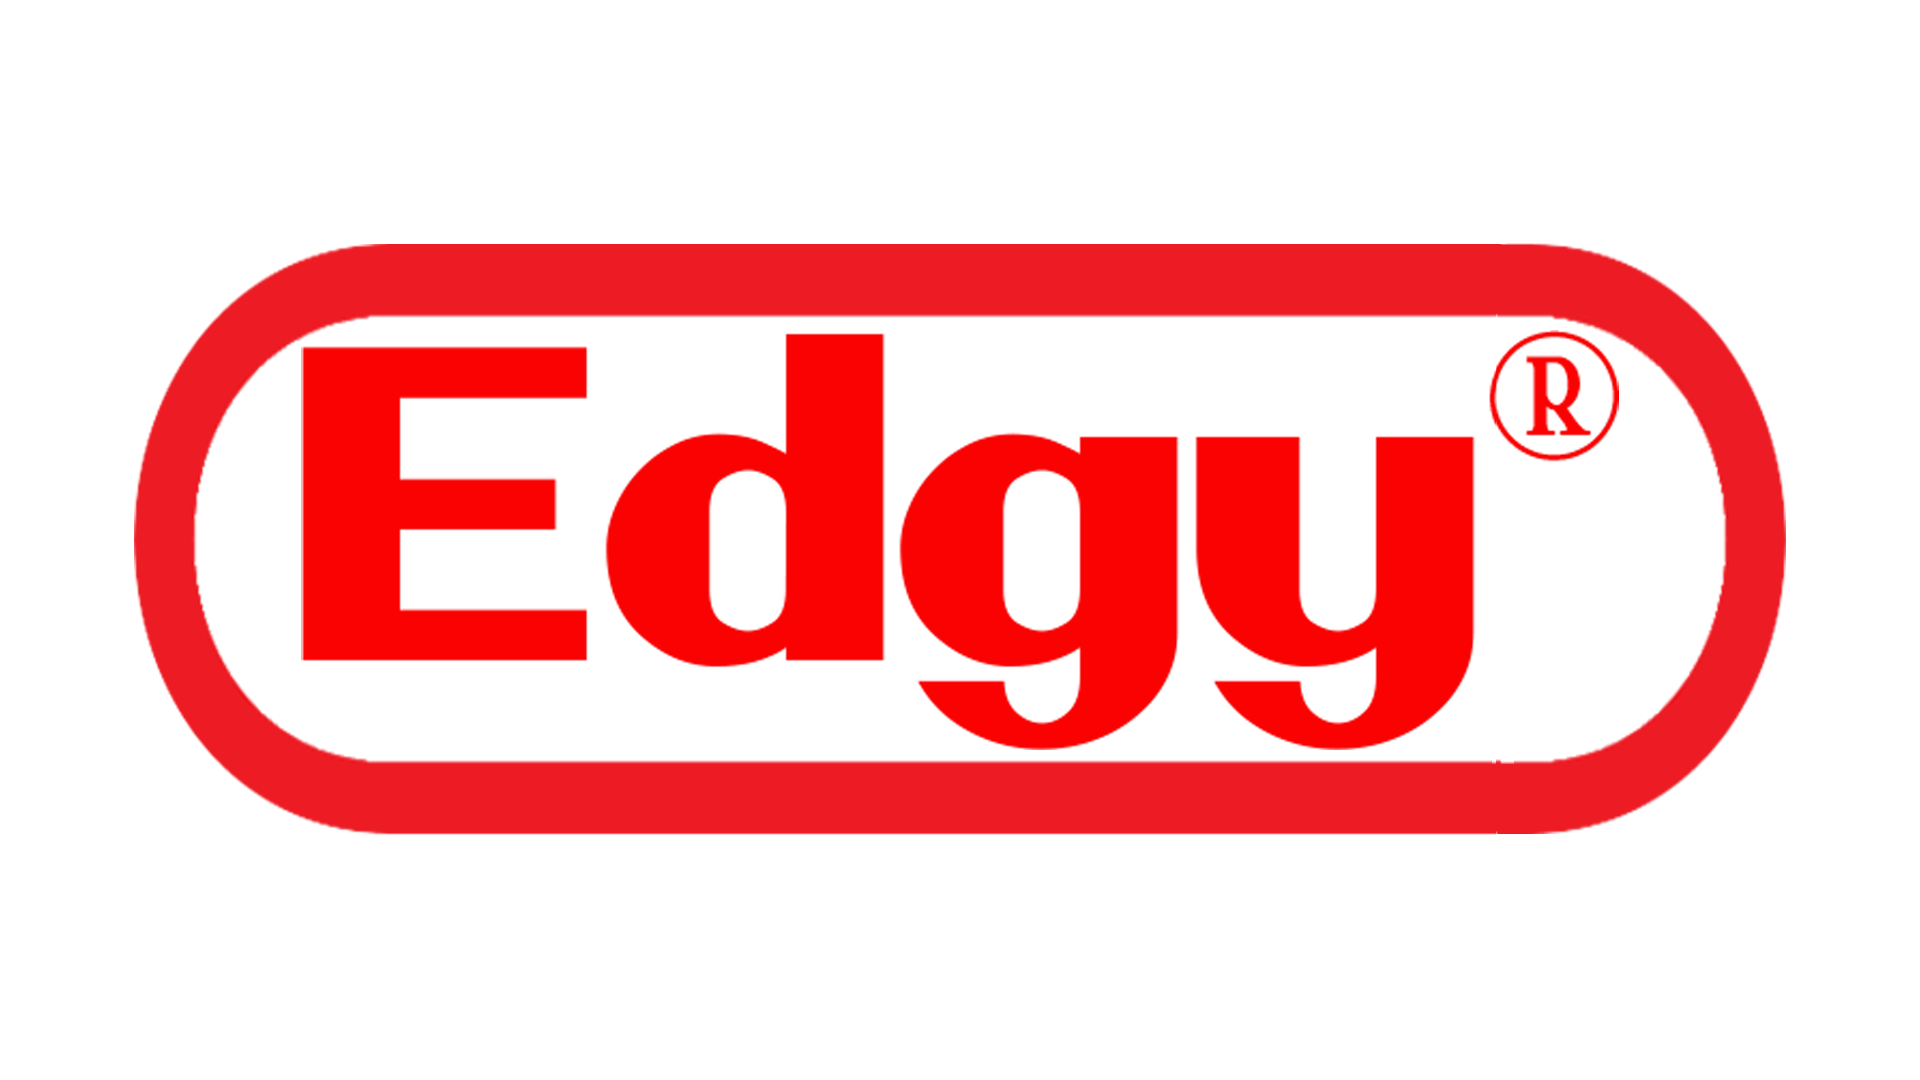 logo transparent gallery edgy 7804